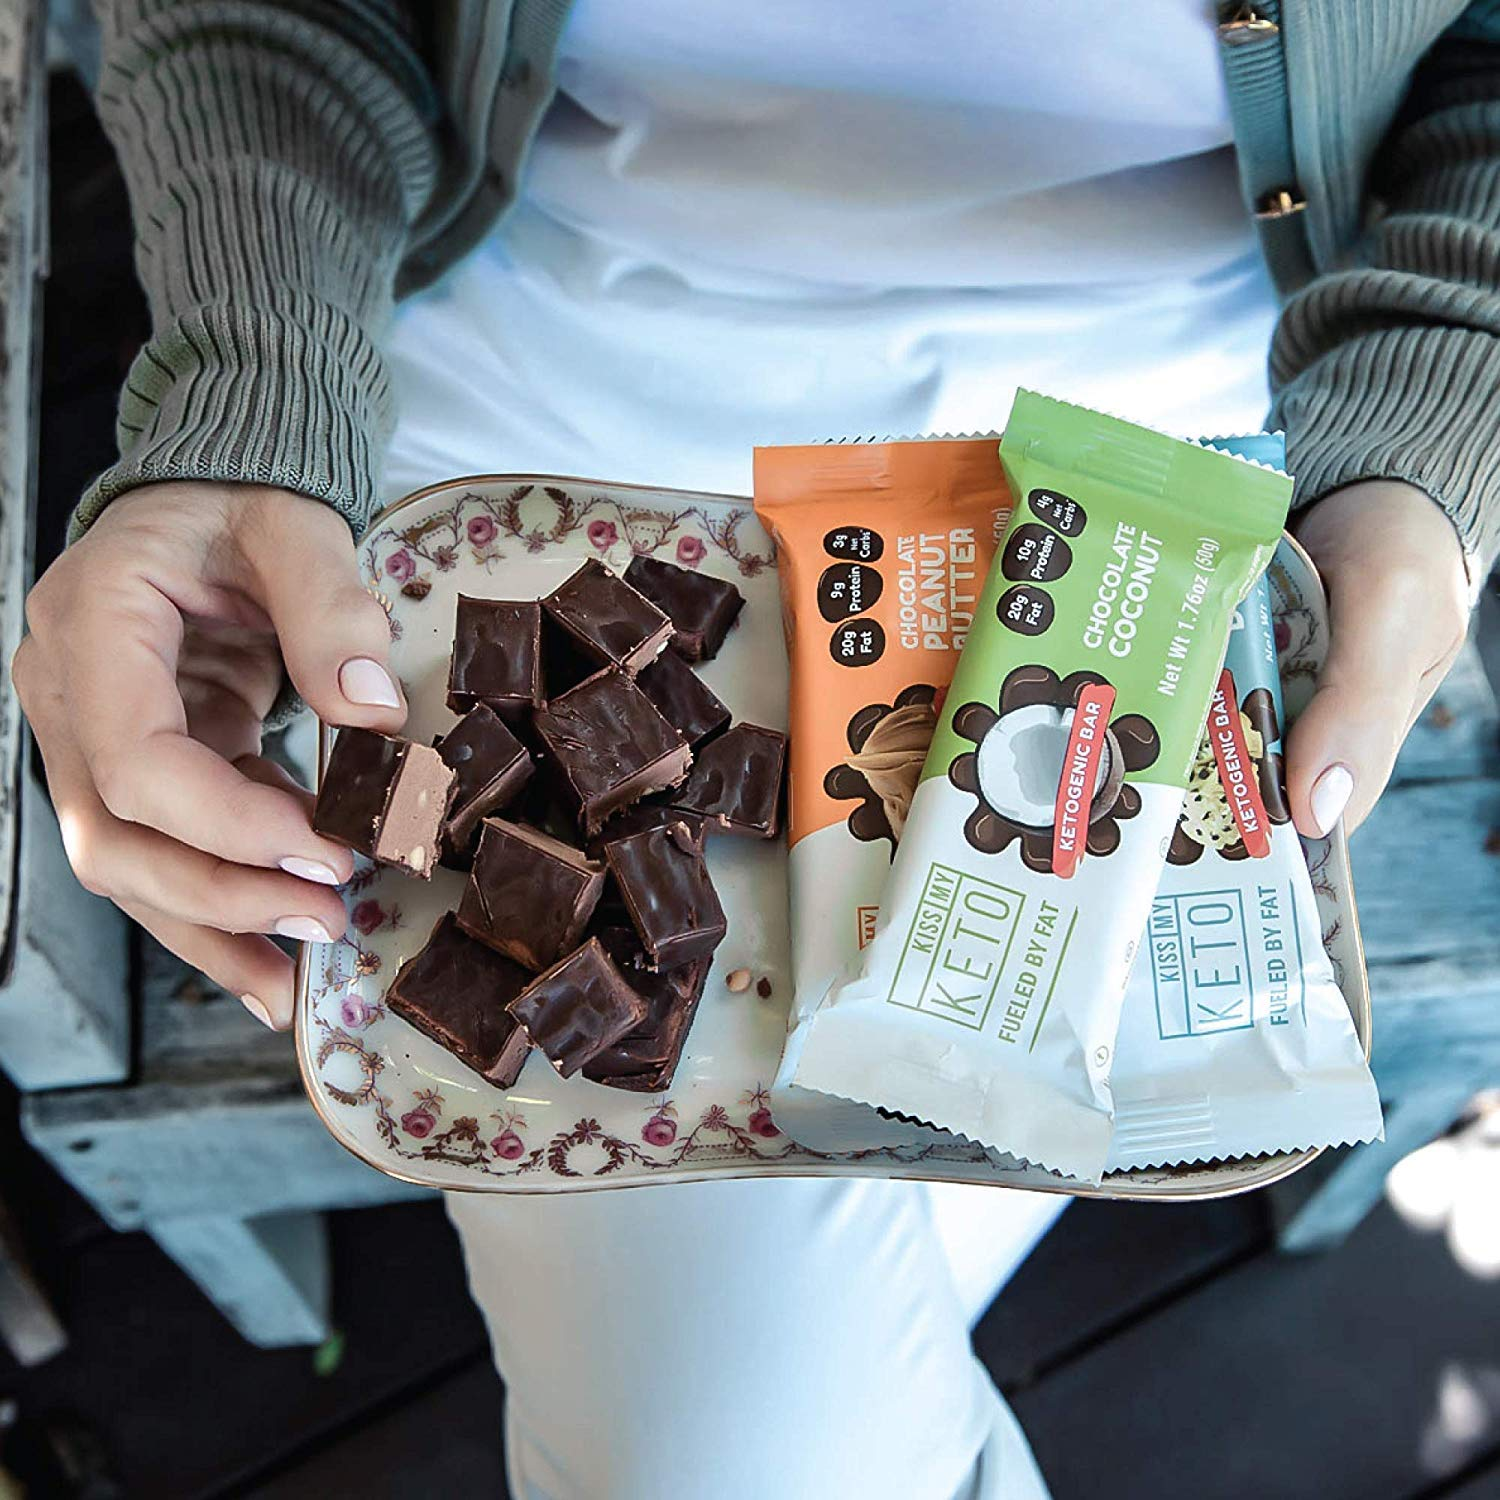 Kiss My Keto Snacks Keto Bars - Keto Chocolate Cookie Dough, Nutritional Keto Food Bars, Paleo, Low Carb/Glycemic Keto Friendly Foods, All Natural On-The-Go Snacks, Quality Fat Bars, 3g Net Carbs by Kiss My Keto (Image #1)